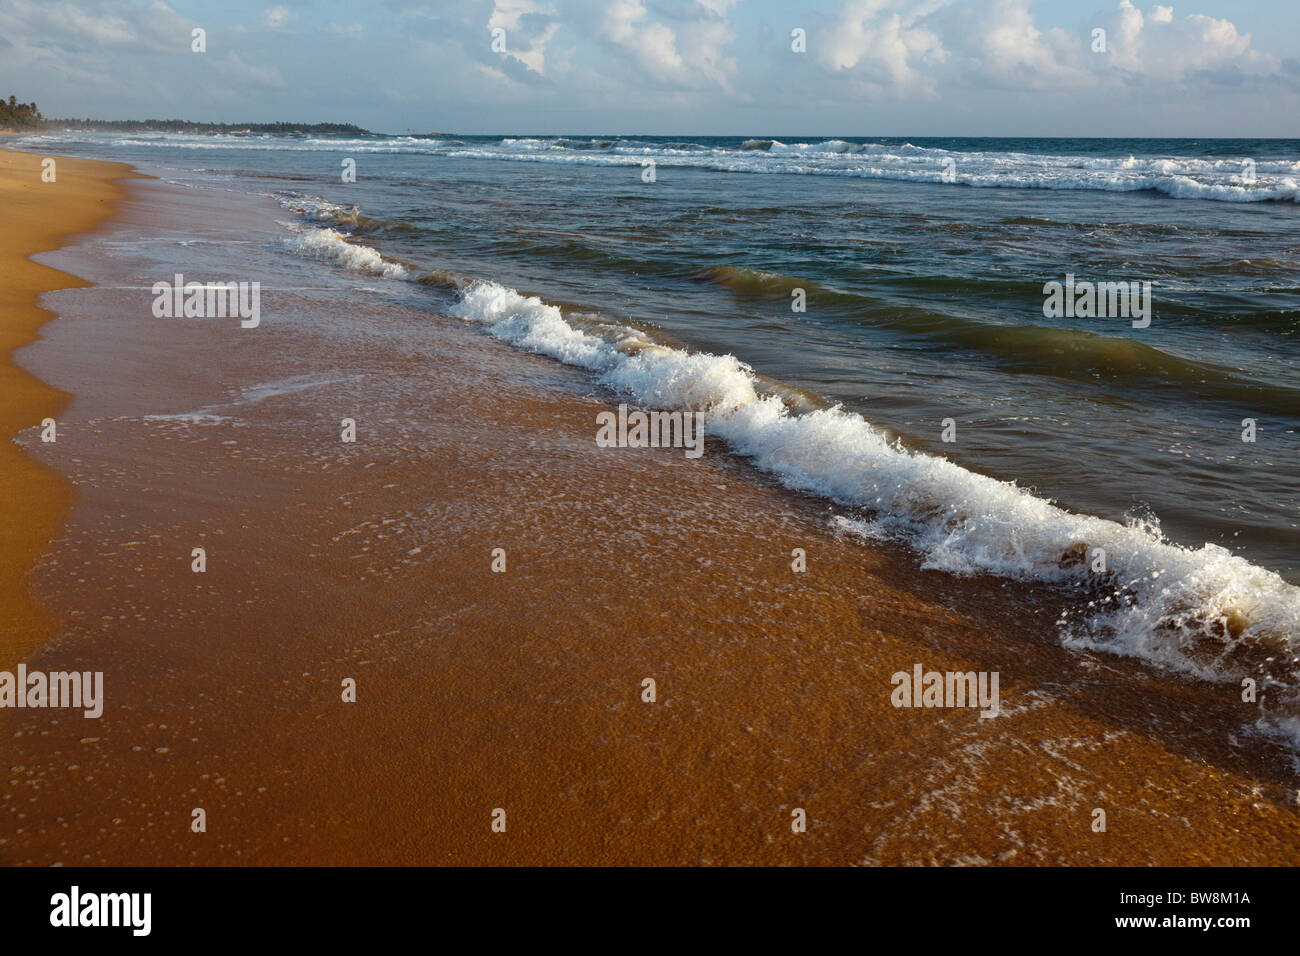 Wave surging on sand on beach - Stock Image